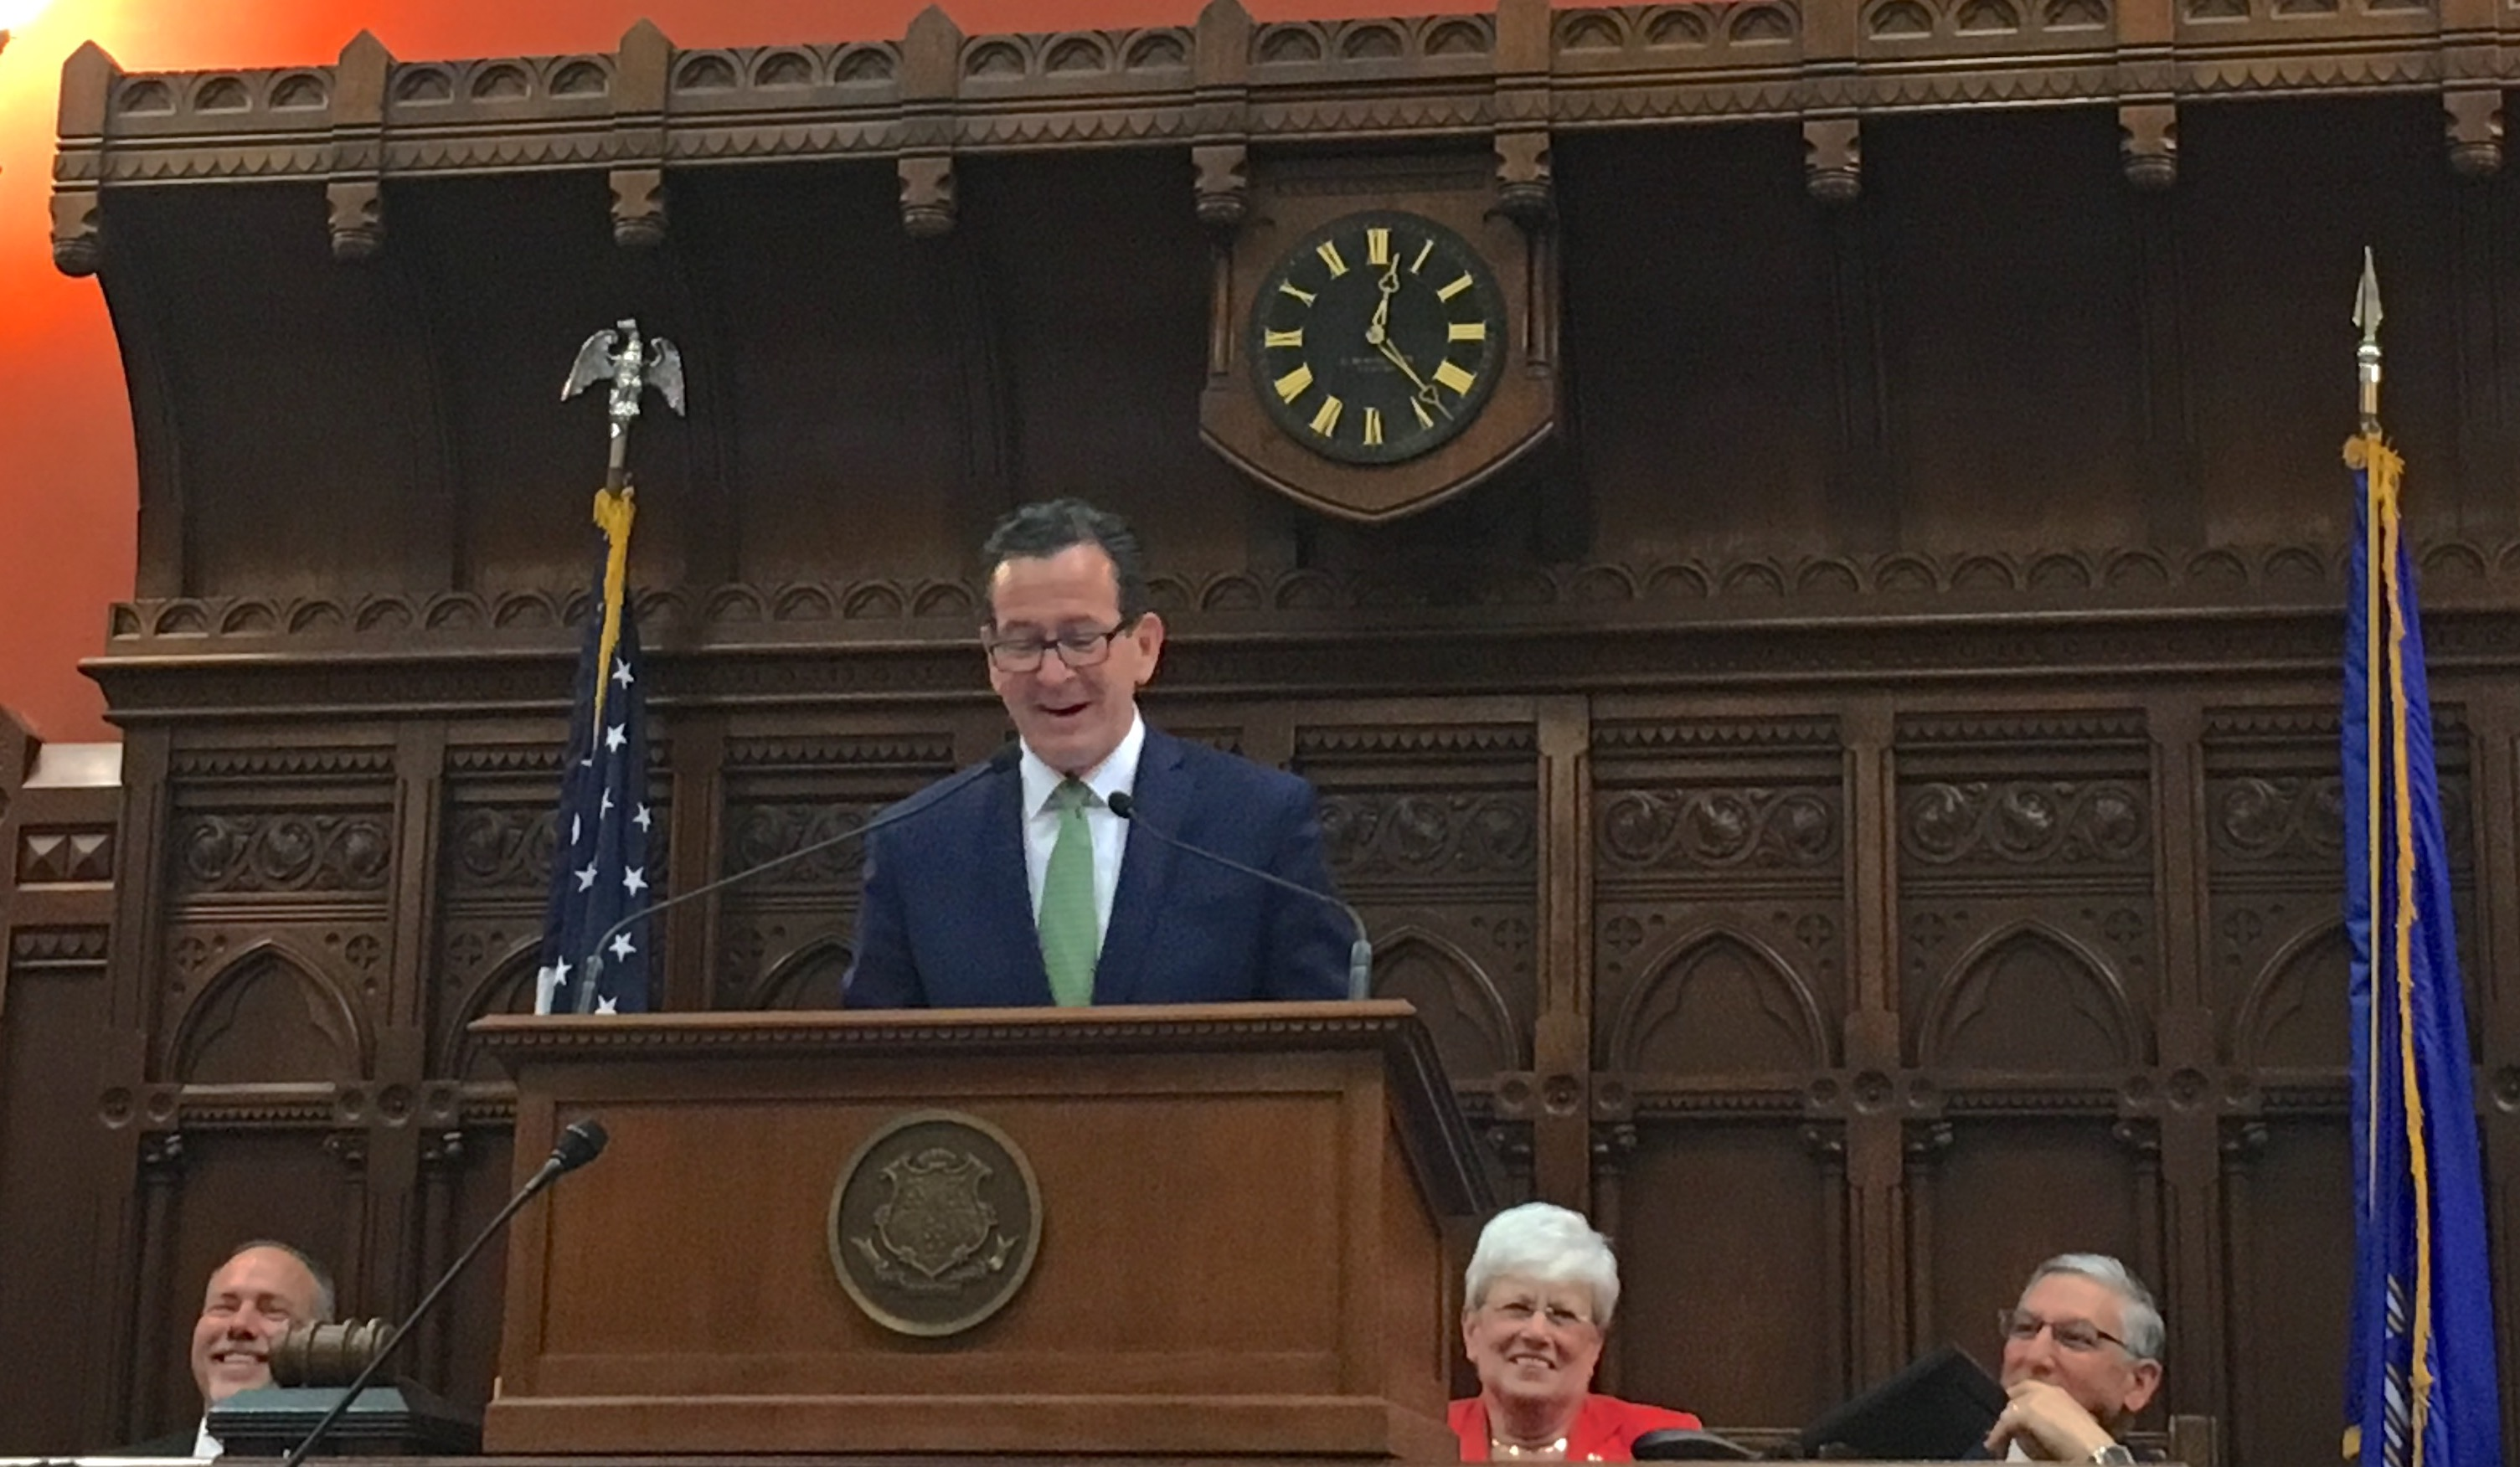 Malloy delivers a funny farewell in midnight address